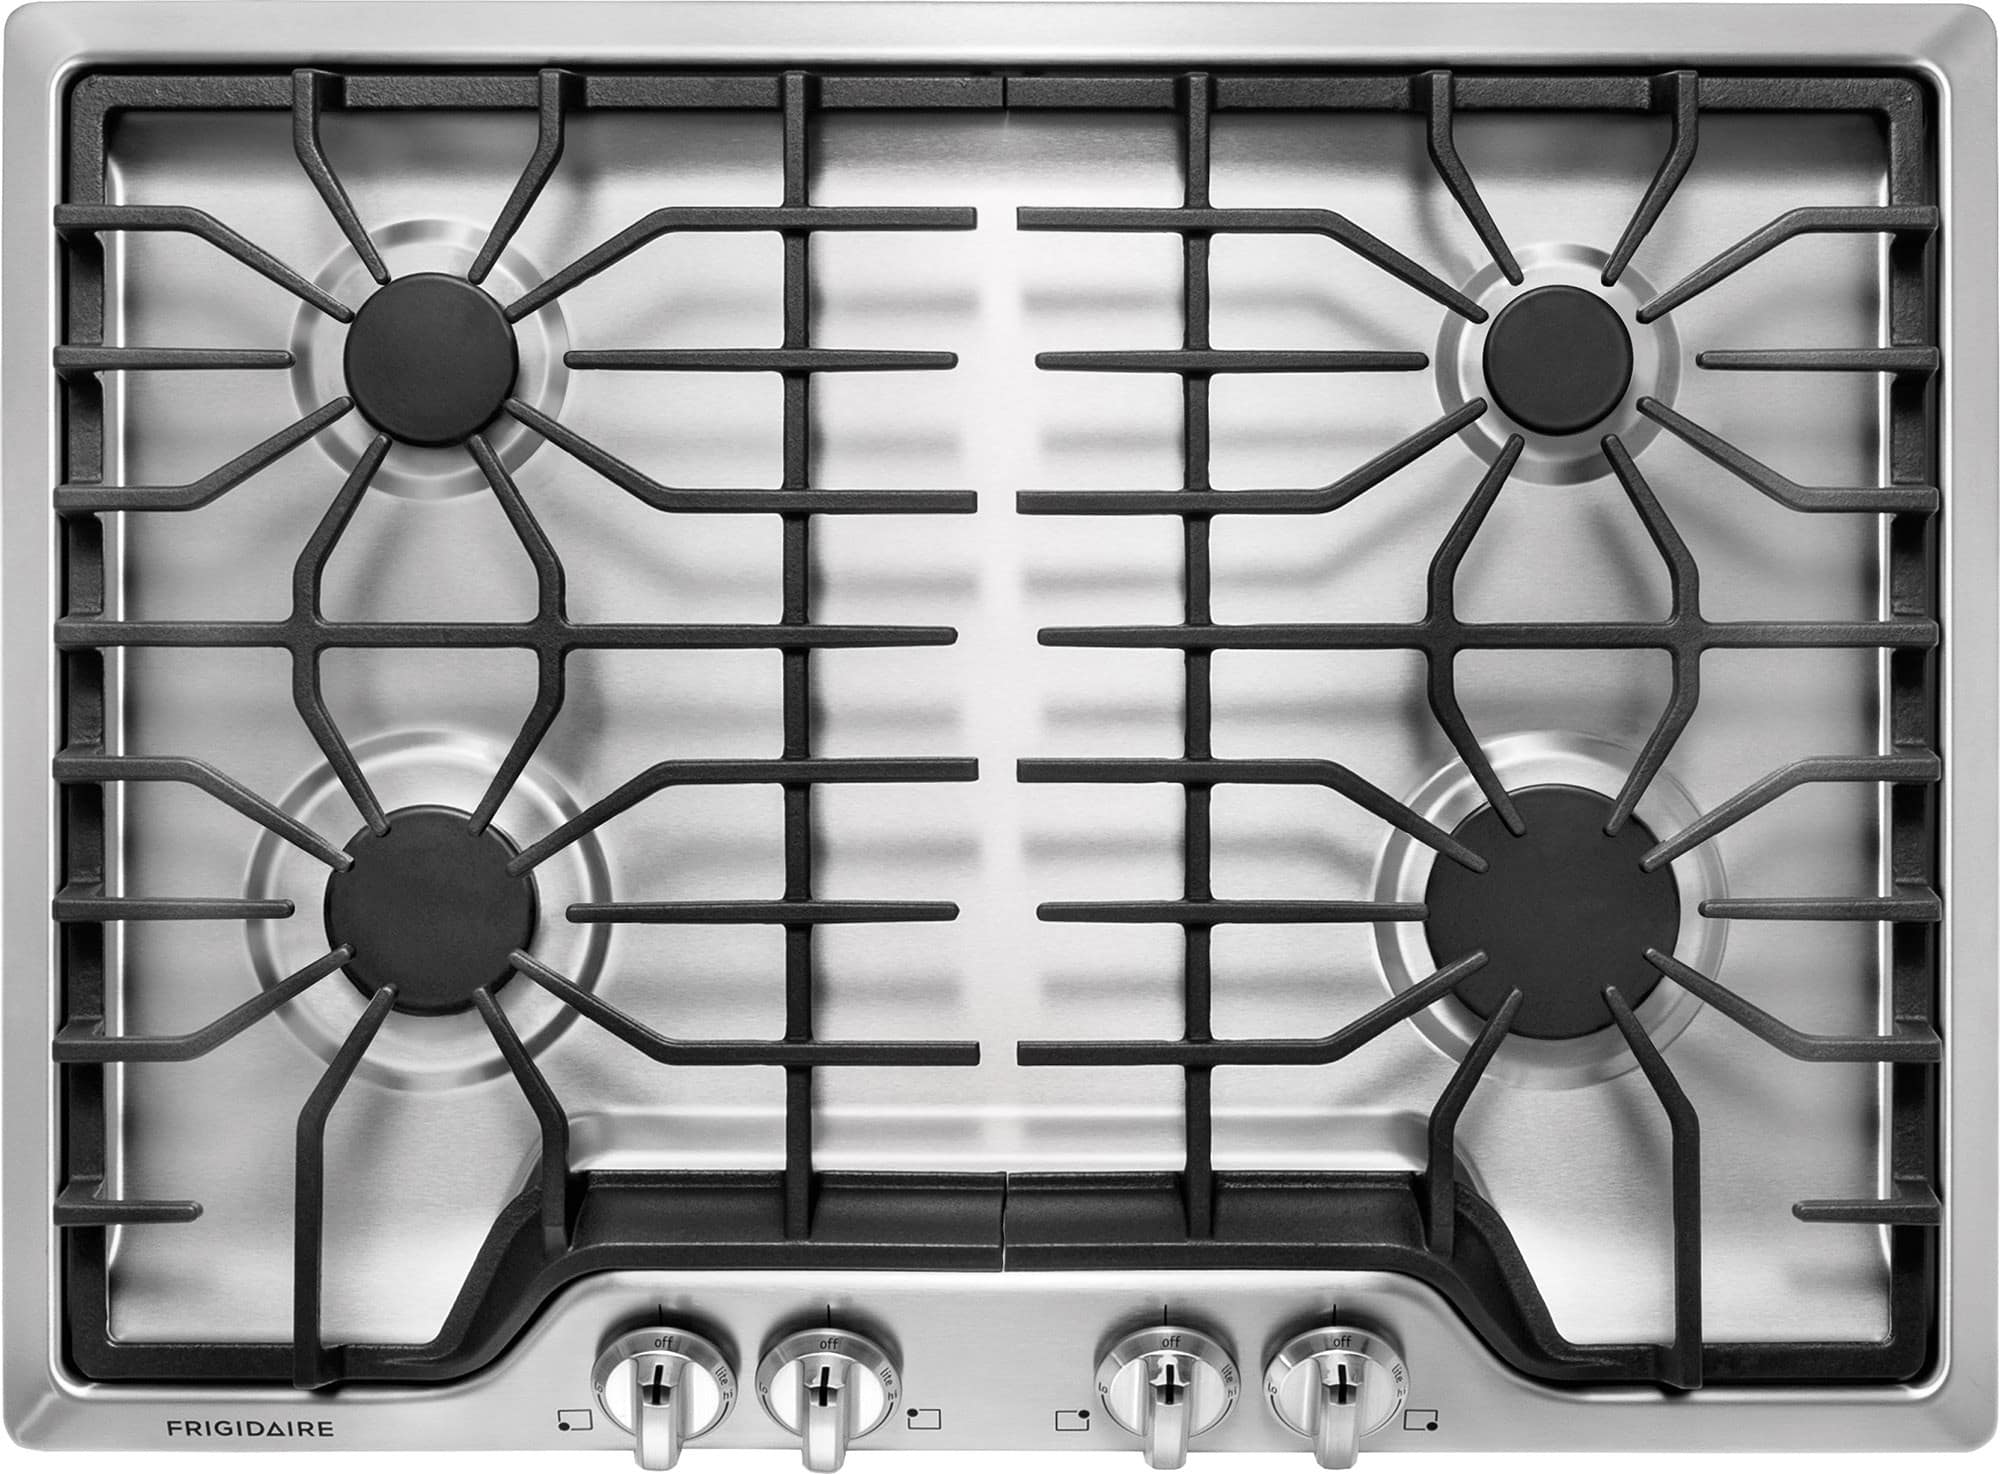 Kitchen gas stove top view - Frigidaire Ffgc3026s 30 Inch Gas Cooktop With 4 Sealed Burners Cast Iron Grates Ready Select Controls Electronic Pilotless Ignition Liquid Propane